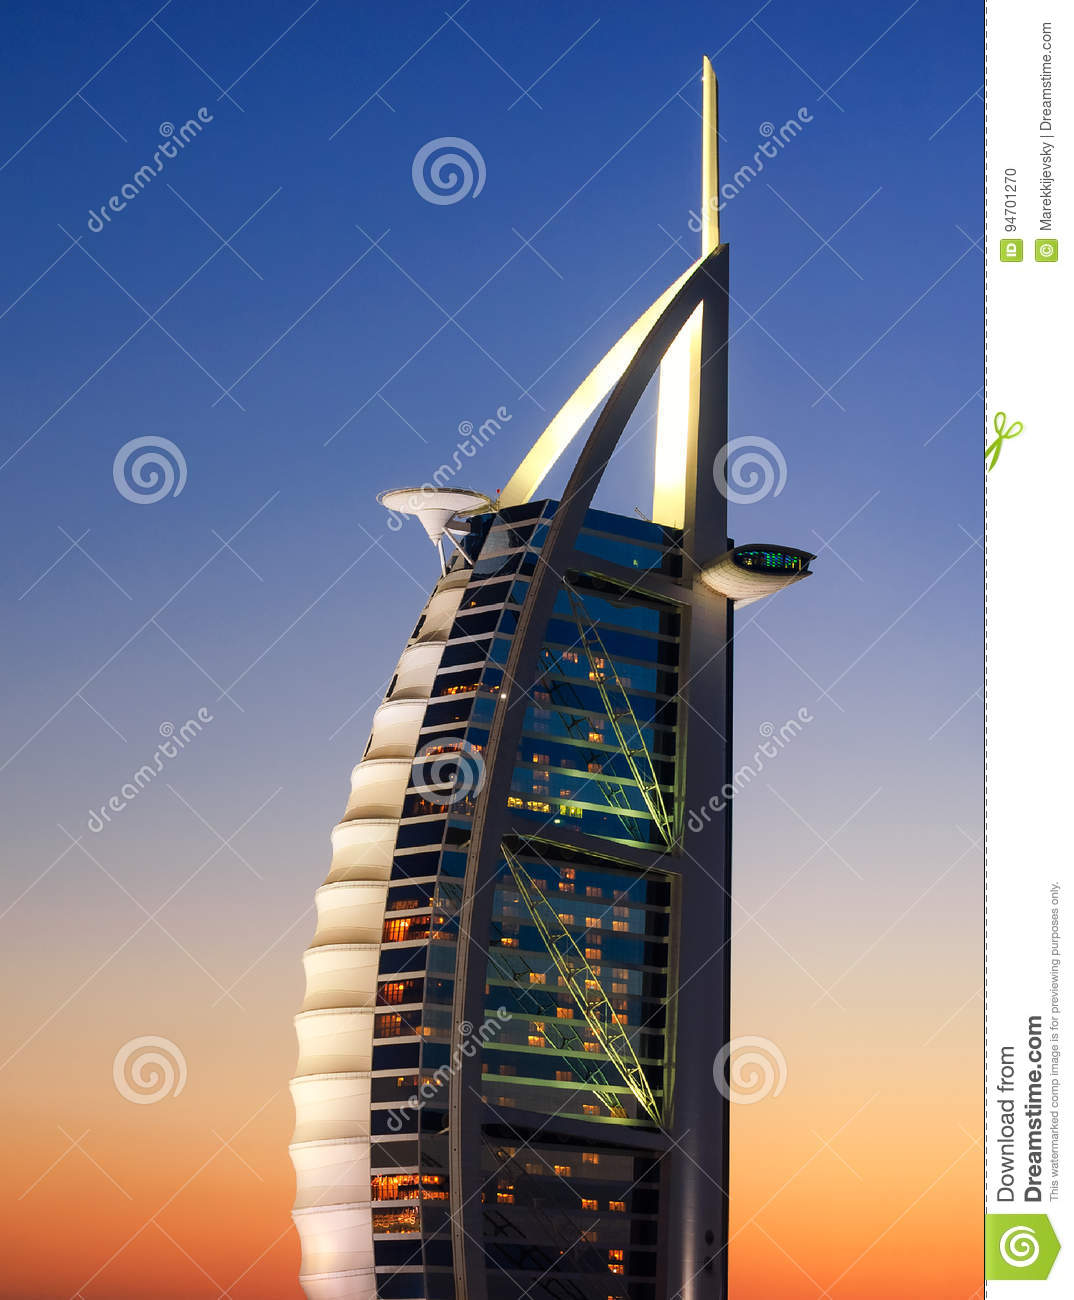 Jumeirah Beach View With 7 Star Hotel Burj Al Arab, Dubai, United.